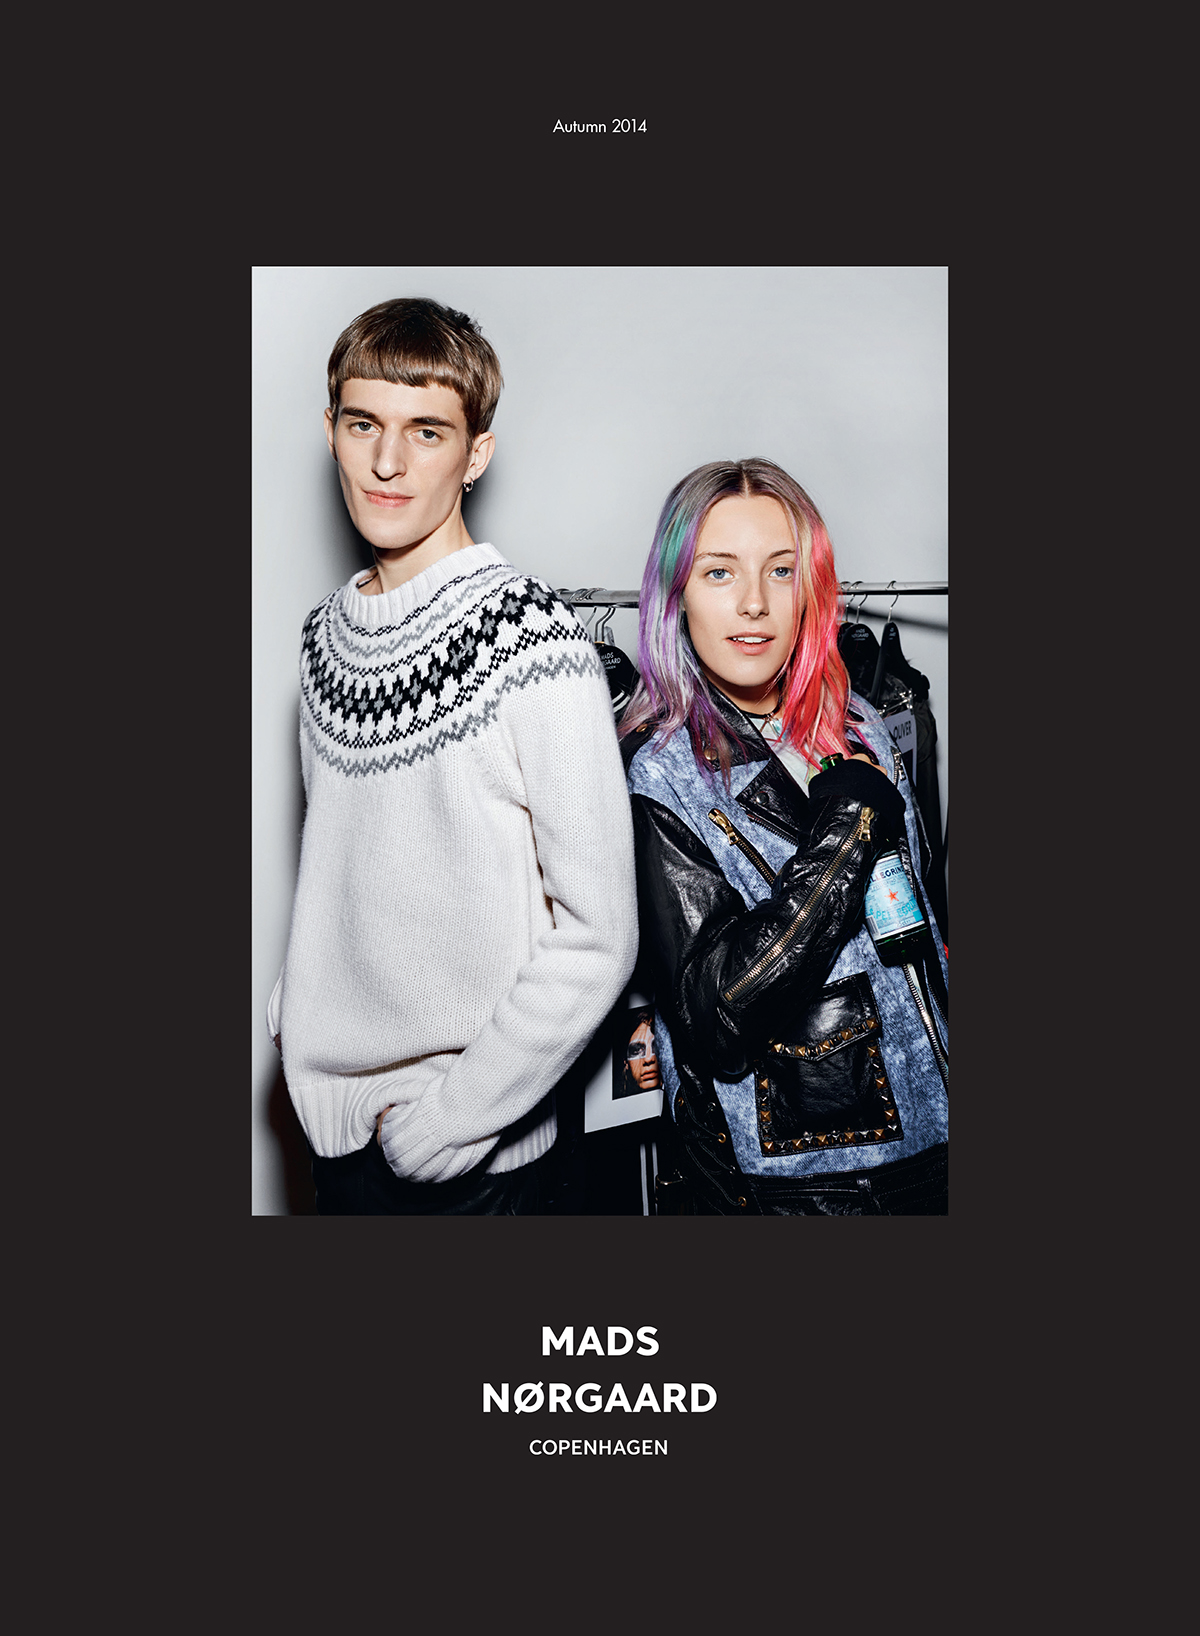 Mads Nørgaard AW14 Image Book